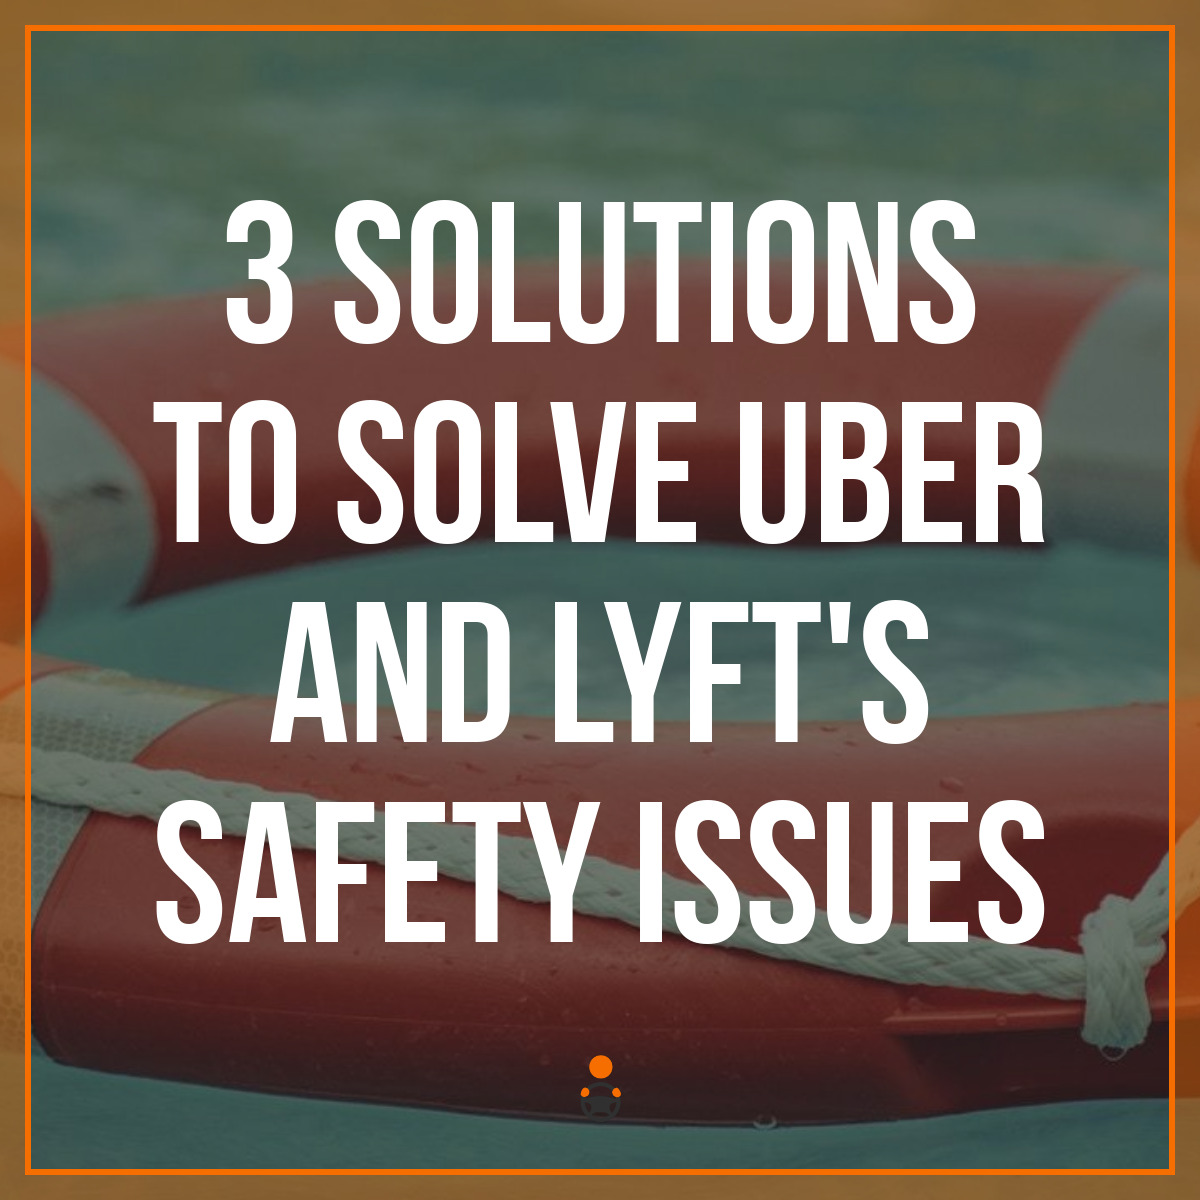 3 Solutions to Solve Uber and Lyft's Safety Issues